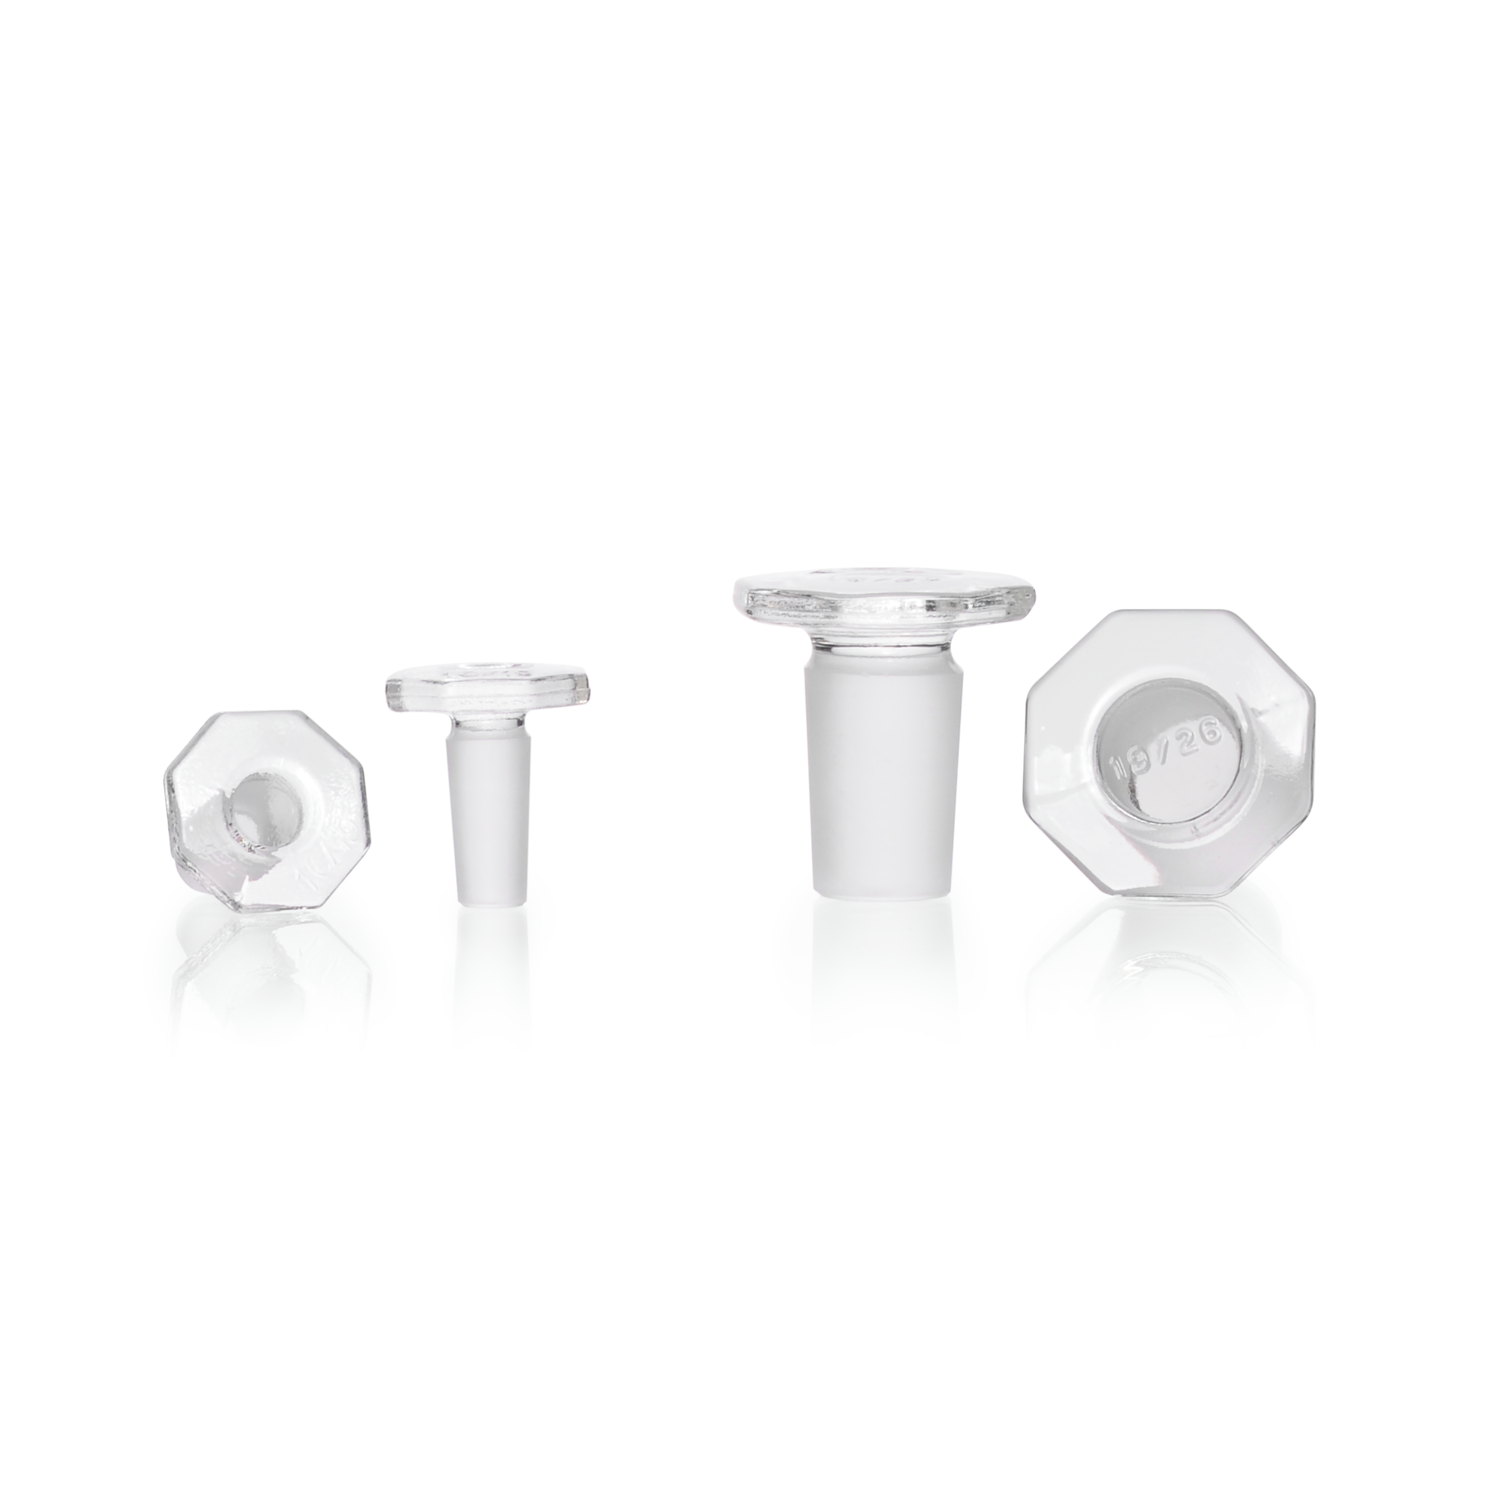 DURAN® Glass Stopper, clear, solid, ST 24/29